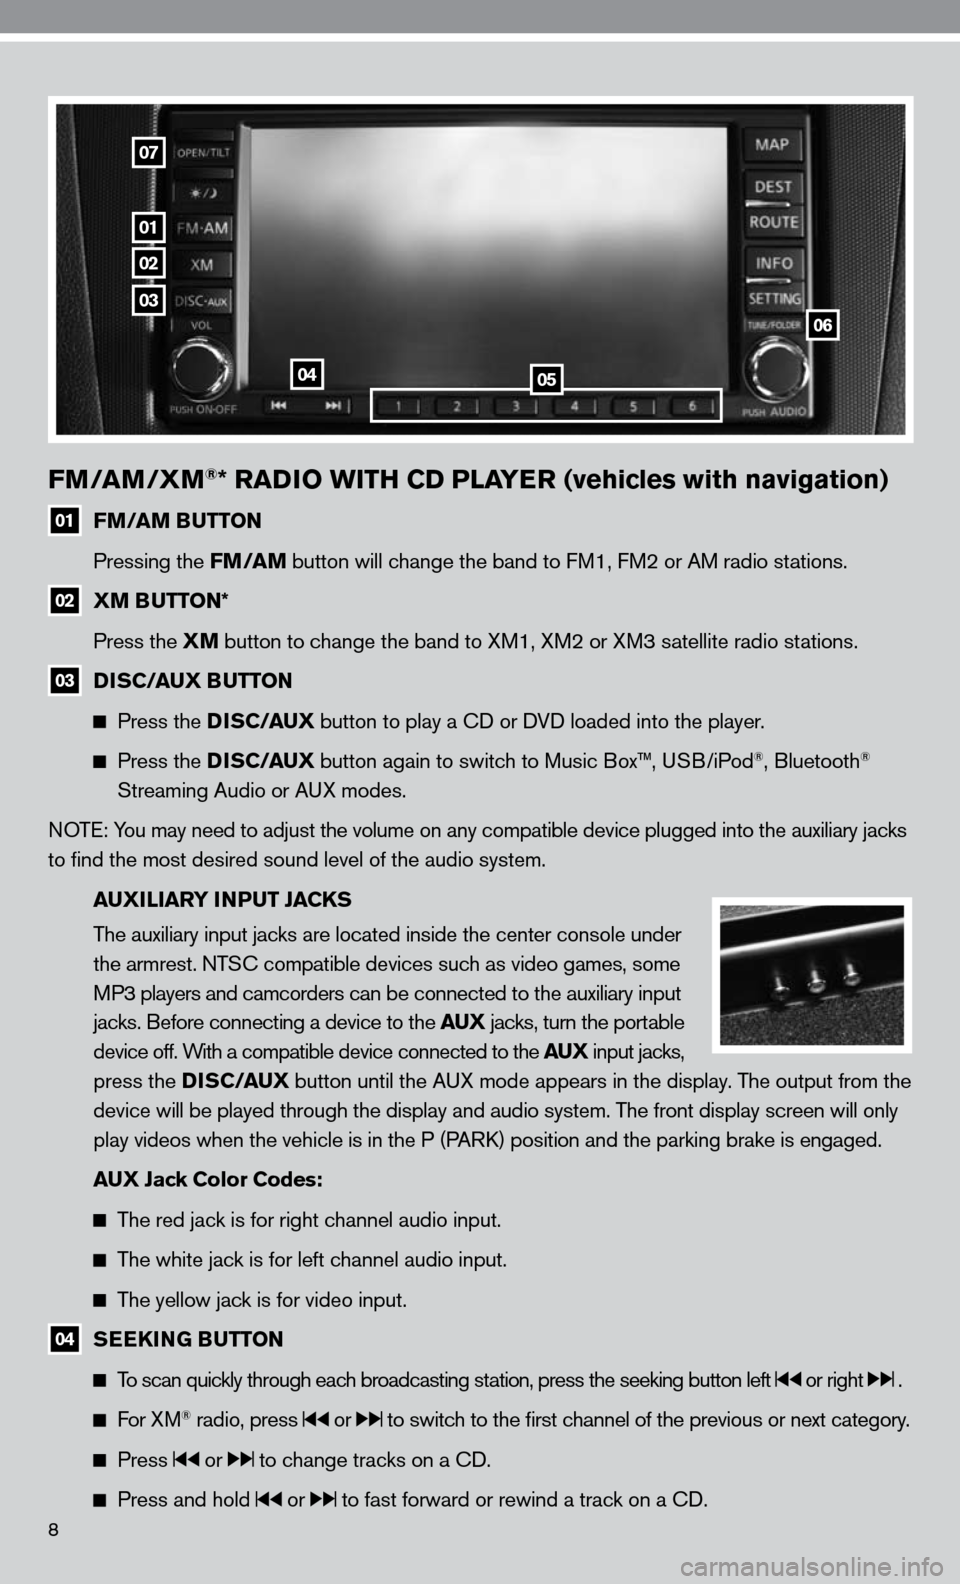 NISSAN ALTIMA COUPE 2010 D32 / 4.G Quick Reference Guide 8 FM/AM/XM®* RADIO WITH CD PLAYER (vehicles with navigation) 01 FM/AM BUTTON     Pressing the FM/AM button will change the band to  fM1,  fM2 or AM radio stations.   02  XM BUTTON*      Press the XM